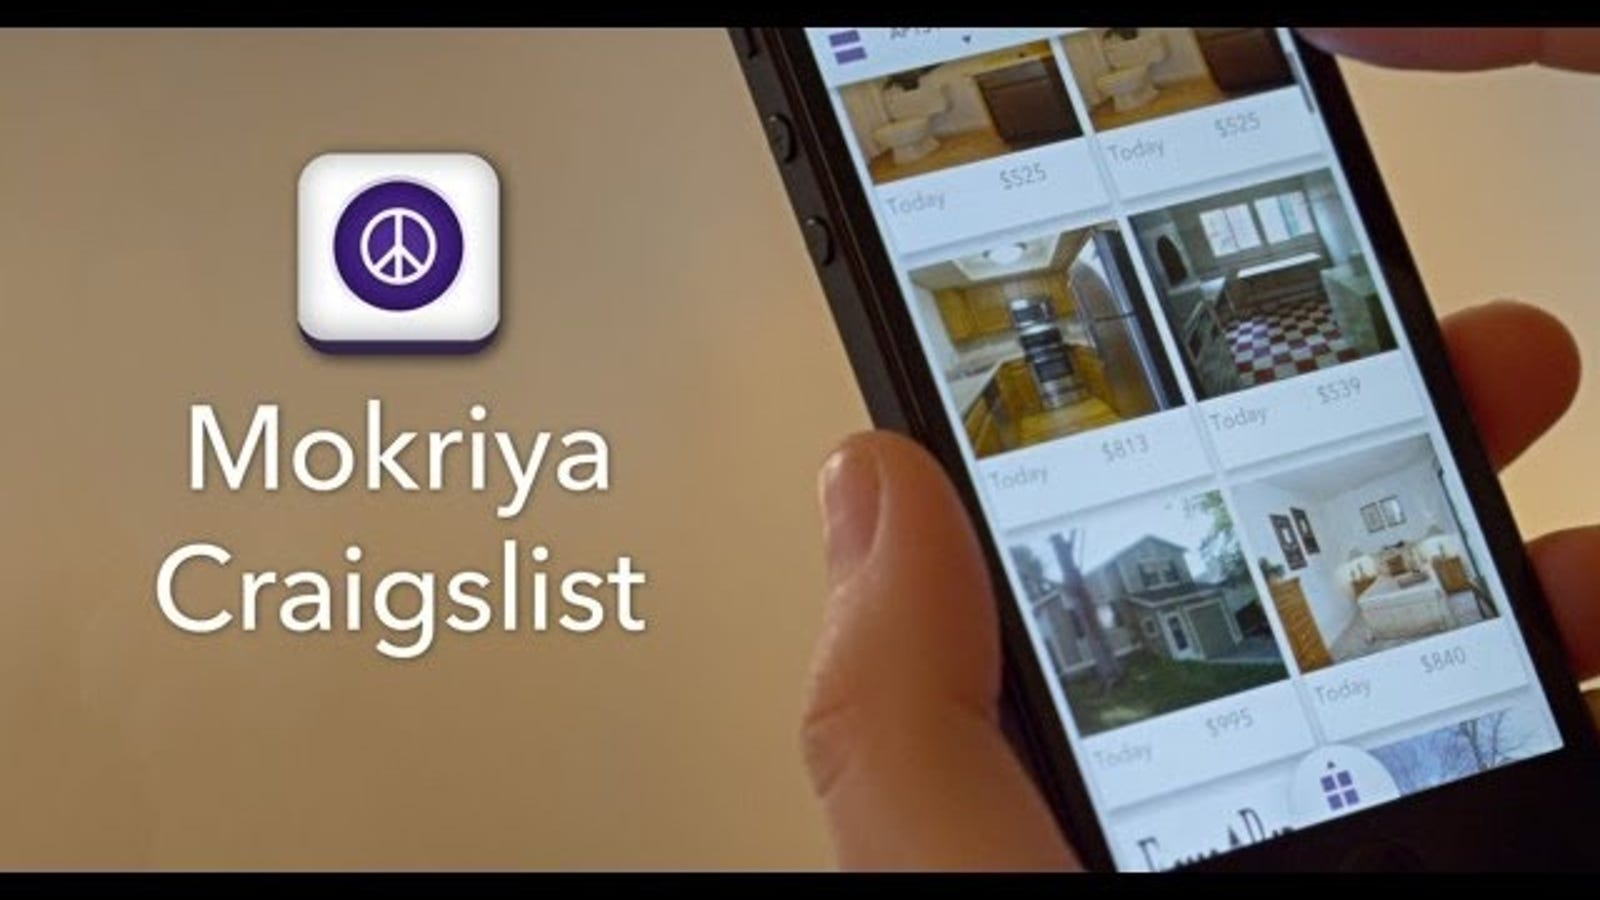 Mokriya Craigslist Is a Beautiful, Officially-Licensed Craigslist